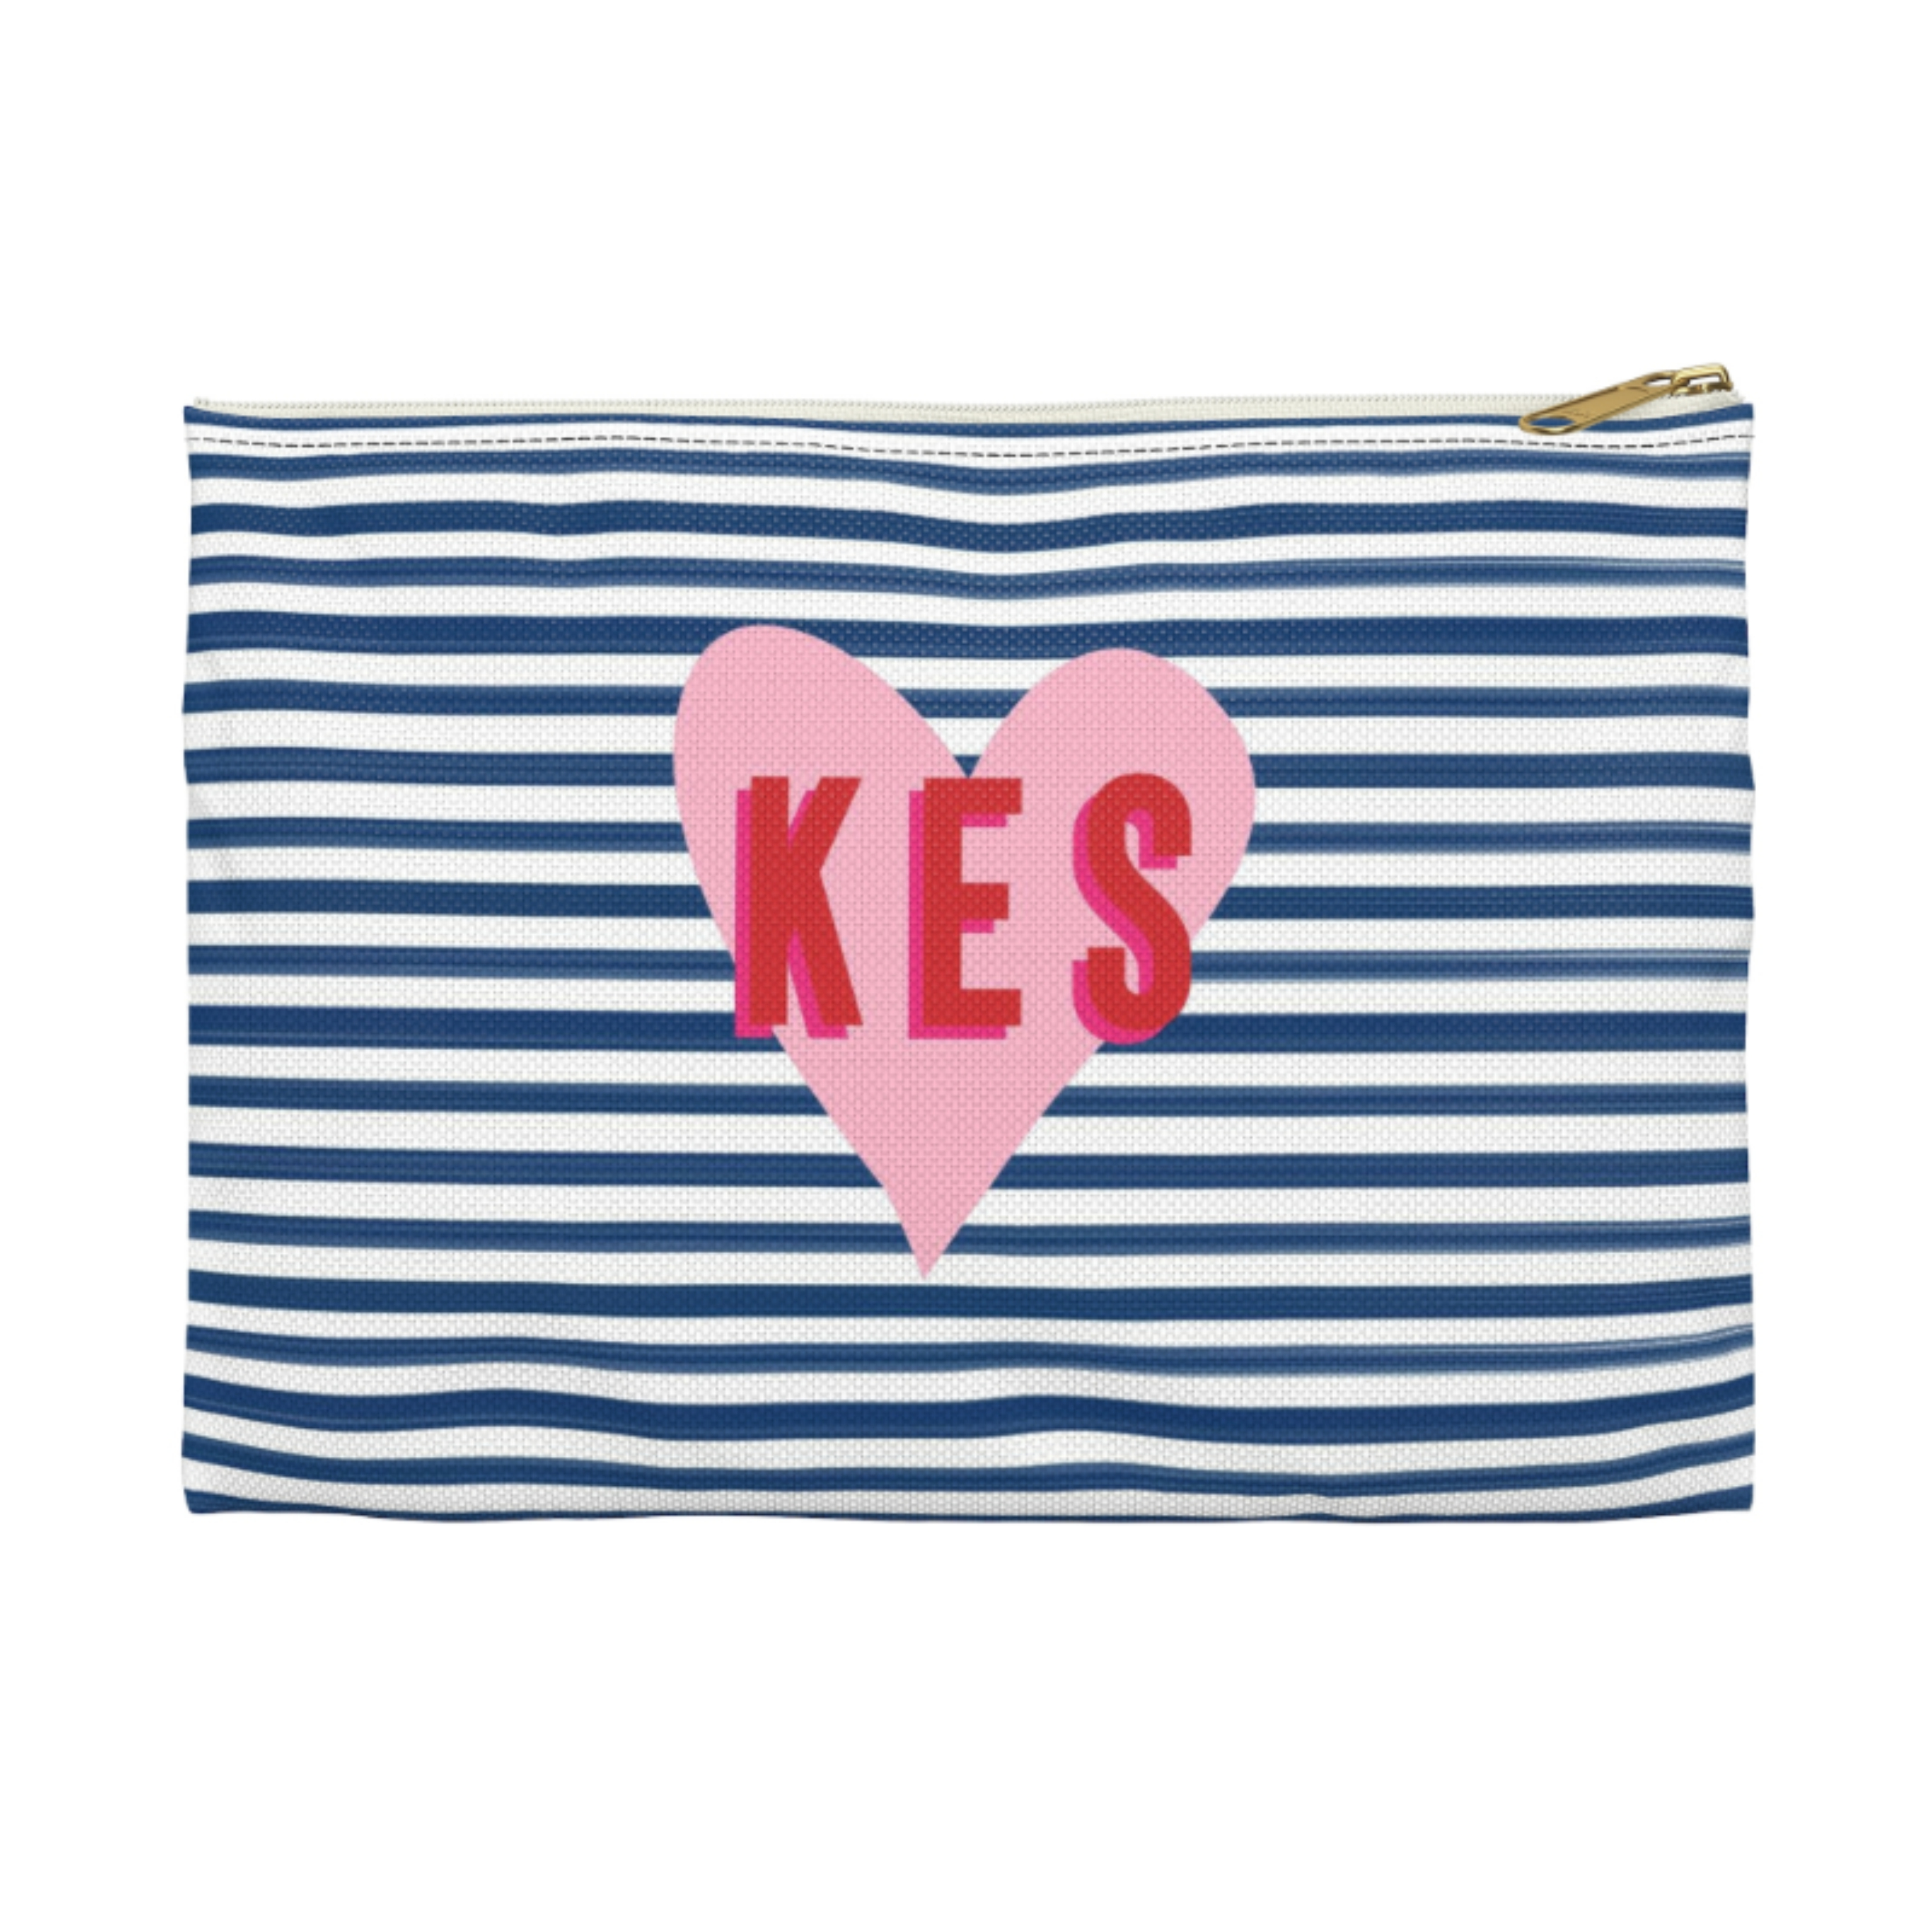 Monogrammed Stripes & Heart Clutch - 2 Sizes Available